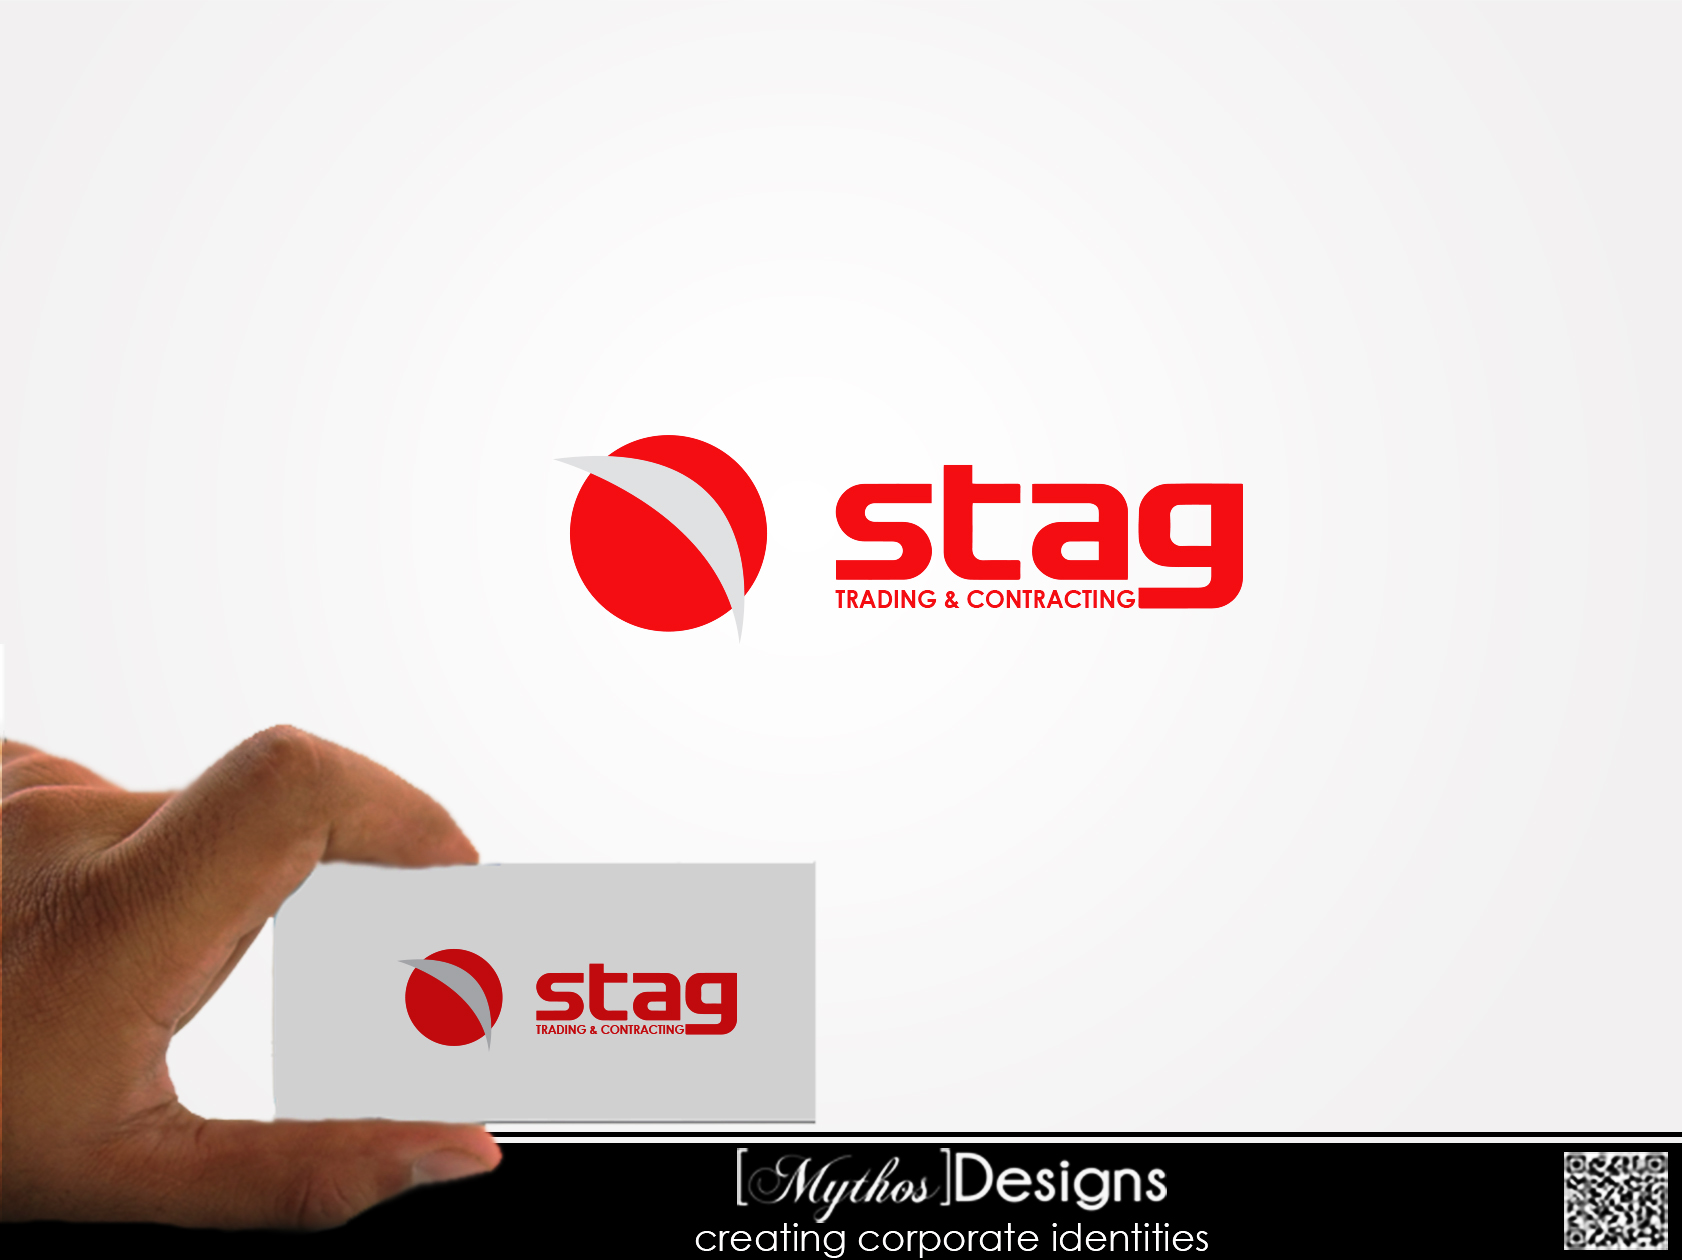 Logo Design by Mythos Designs - Entry No. 34 in the Logo Design Contest Captivating Logo Design for STAG Trading & Contracting.